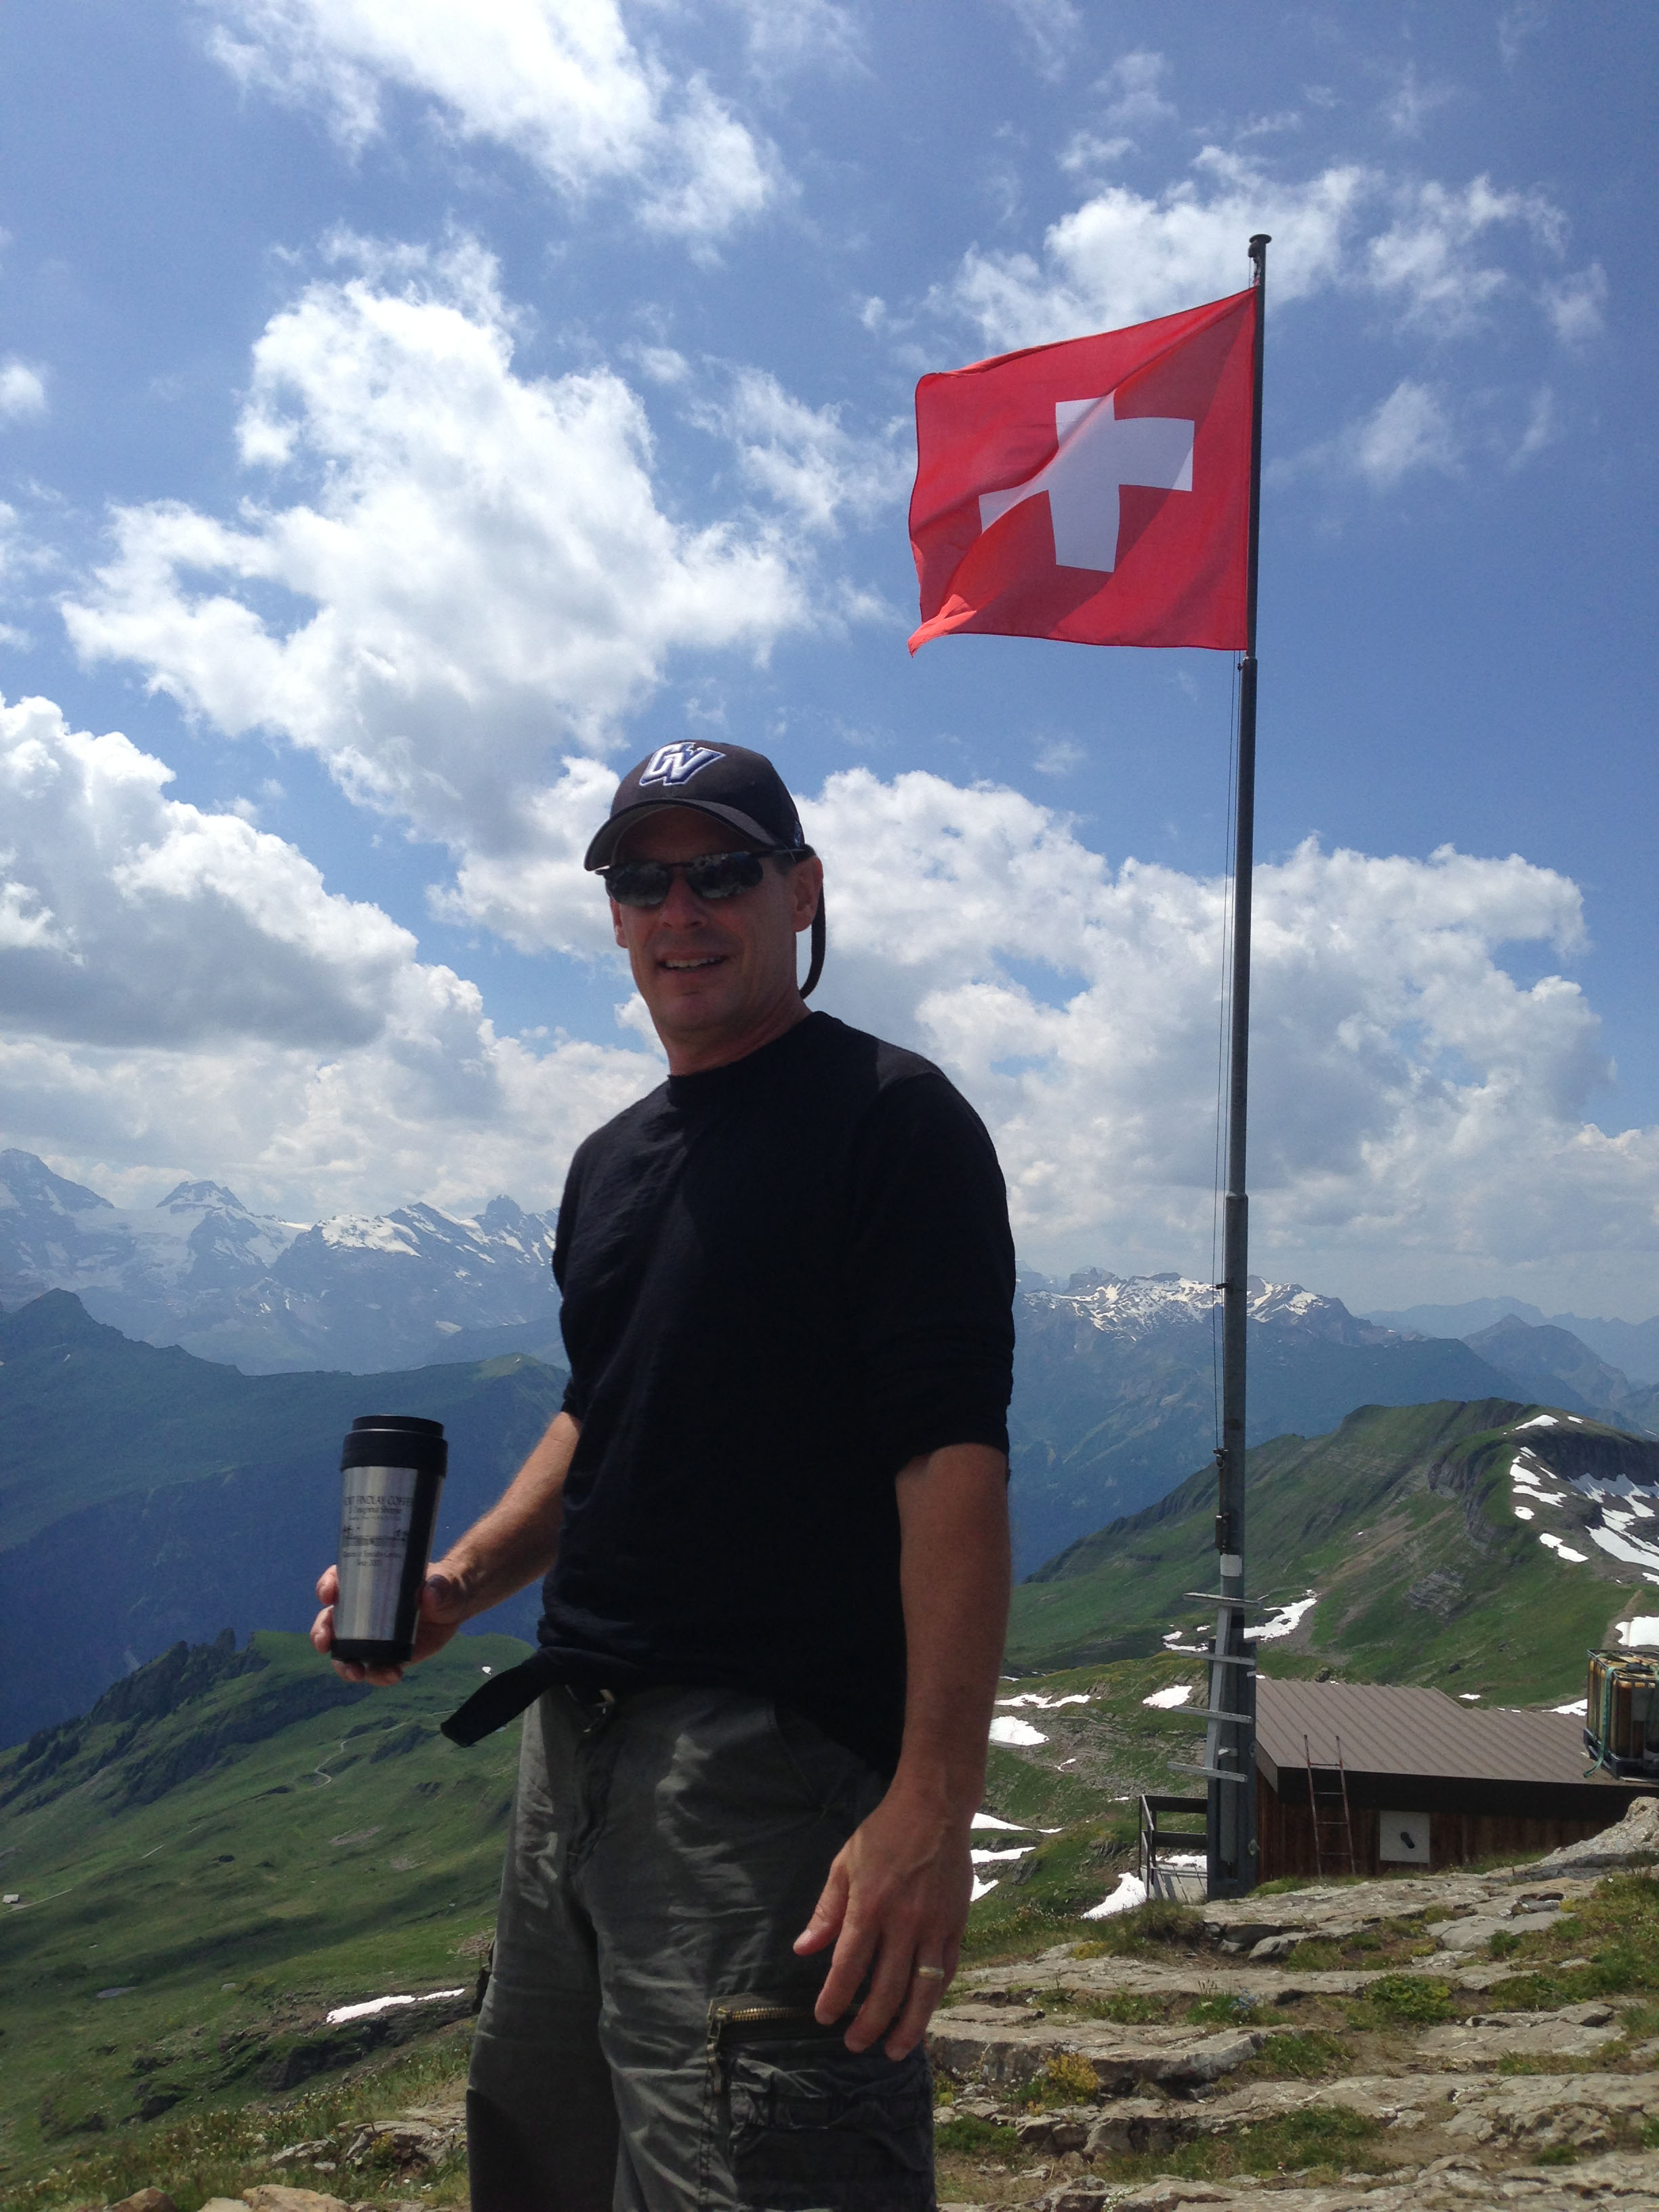 Joe D in Switzerland